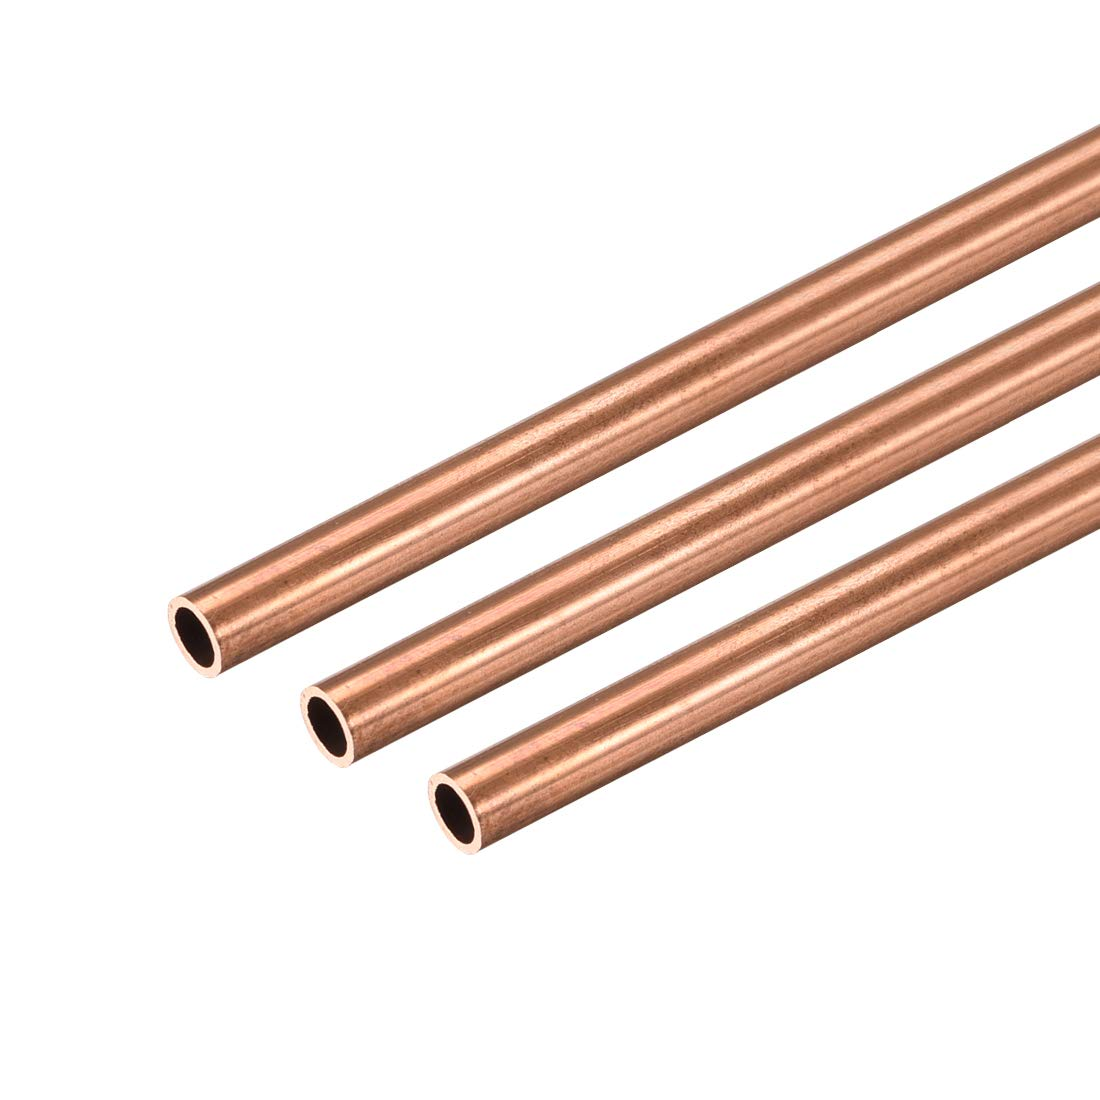 uxcell Copper Round Tube, 4mm OD 0.5mm Wall Thickness 300mm Long Straight Pipe Tubing 3 Pcs